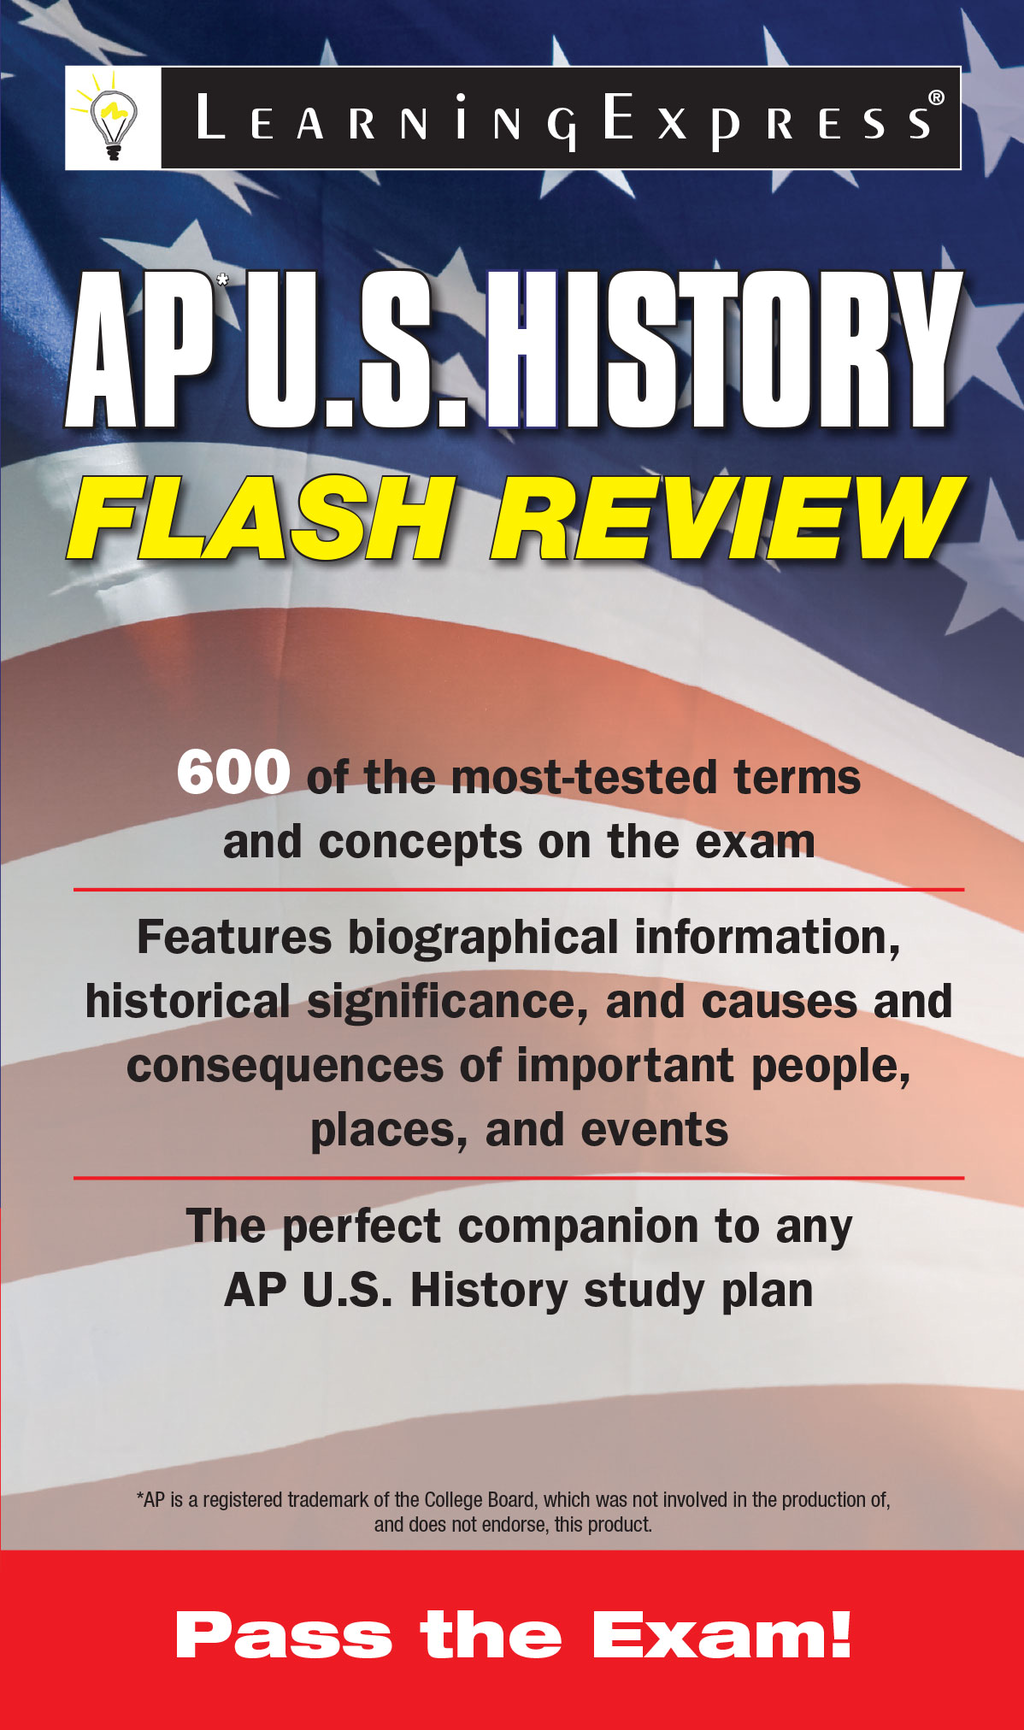 AP U.S. History Flash Review